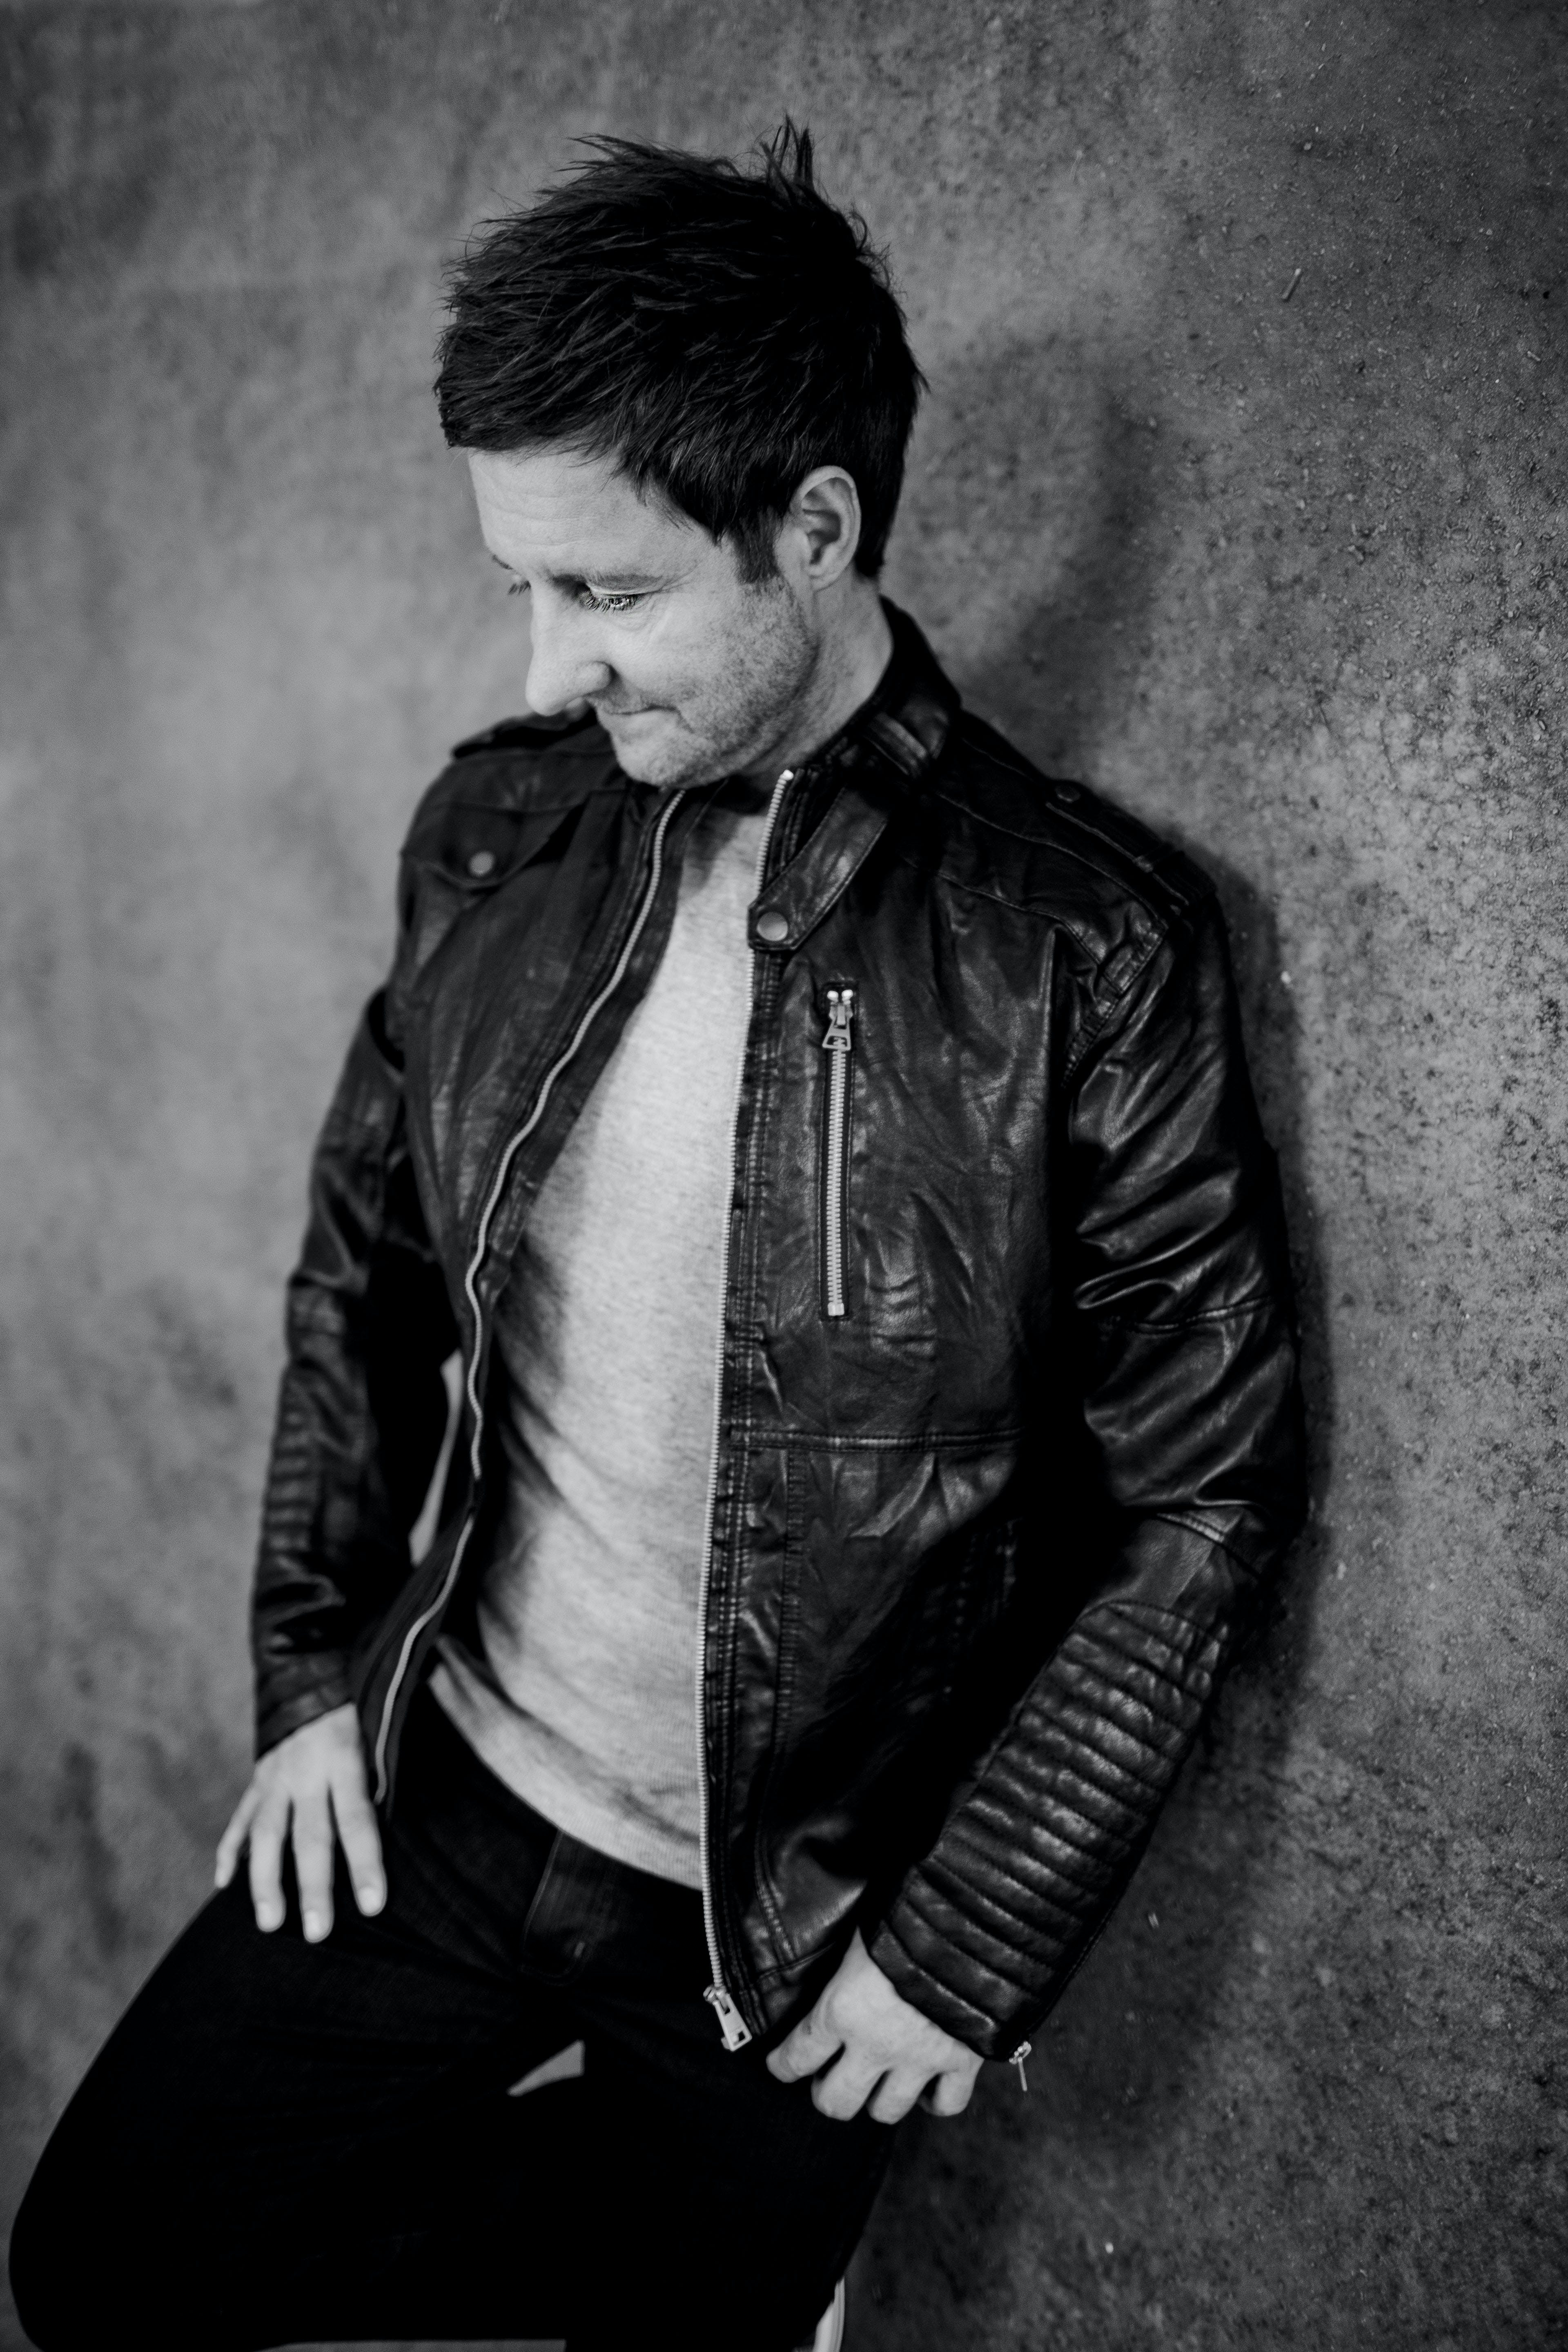 Grayscale Photo of Man Wearing Black Leather Full-zip Jacket